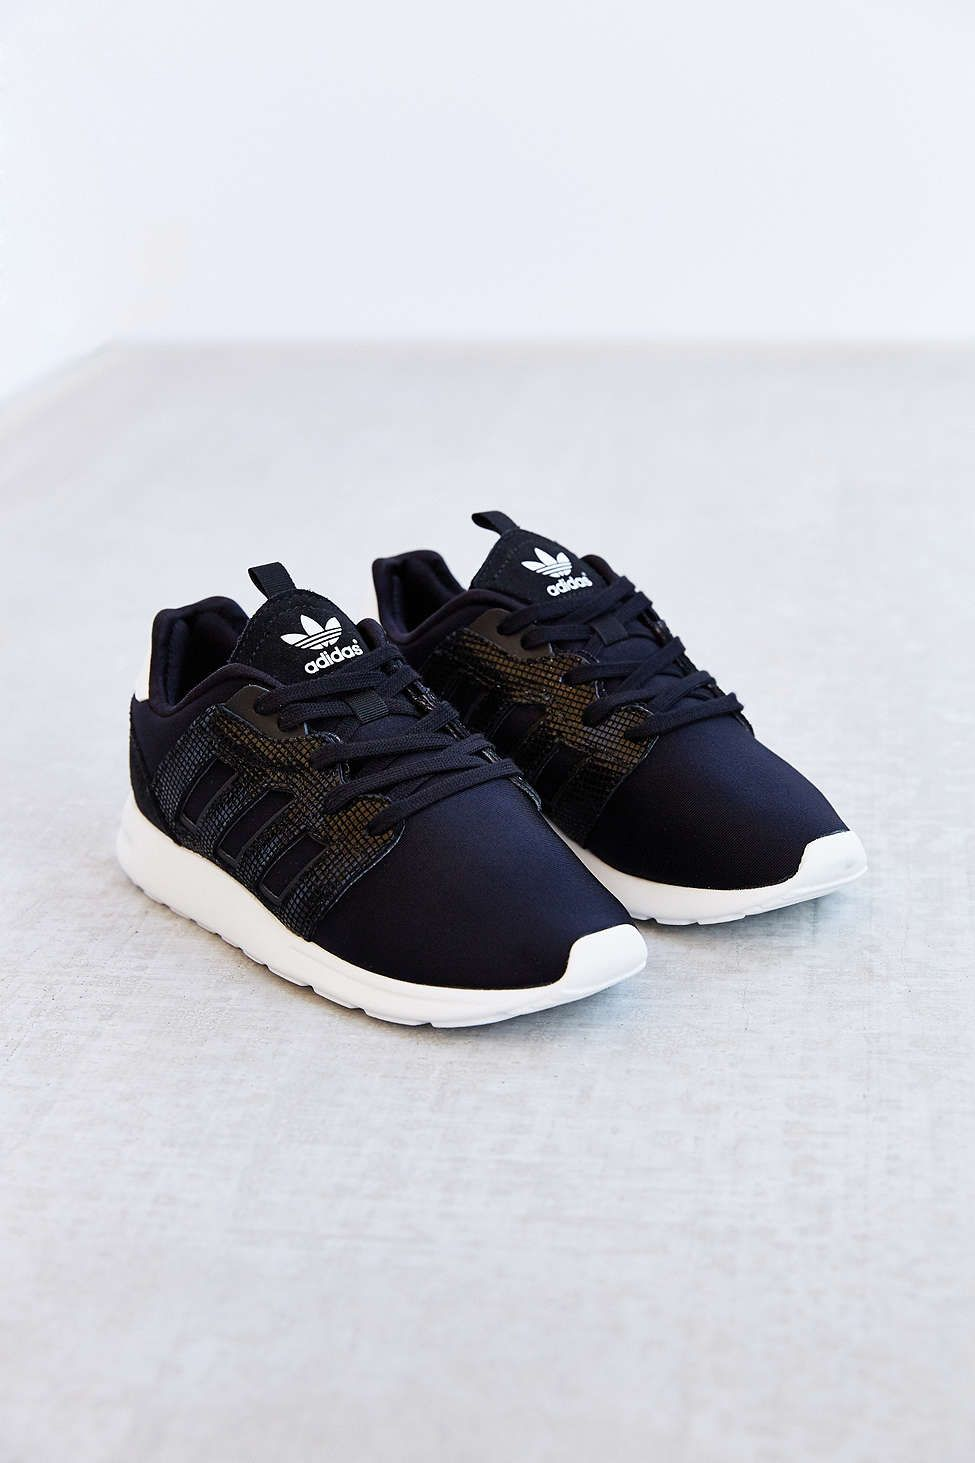 ebe65b81094 adidas ZX 500 2.0 Sneaker - Urban Outfitters